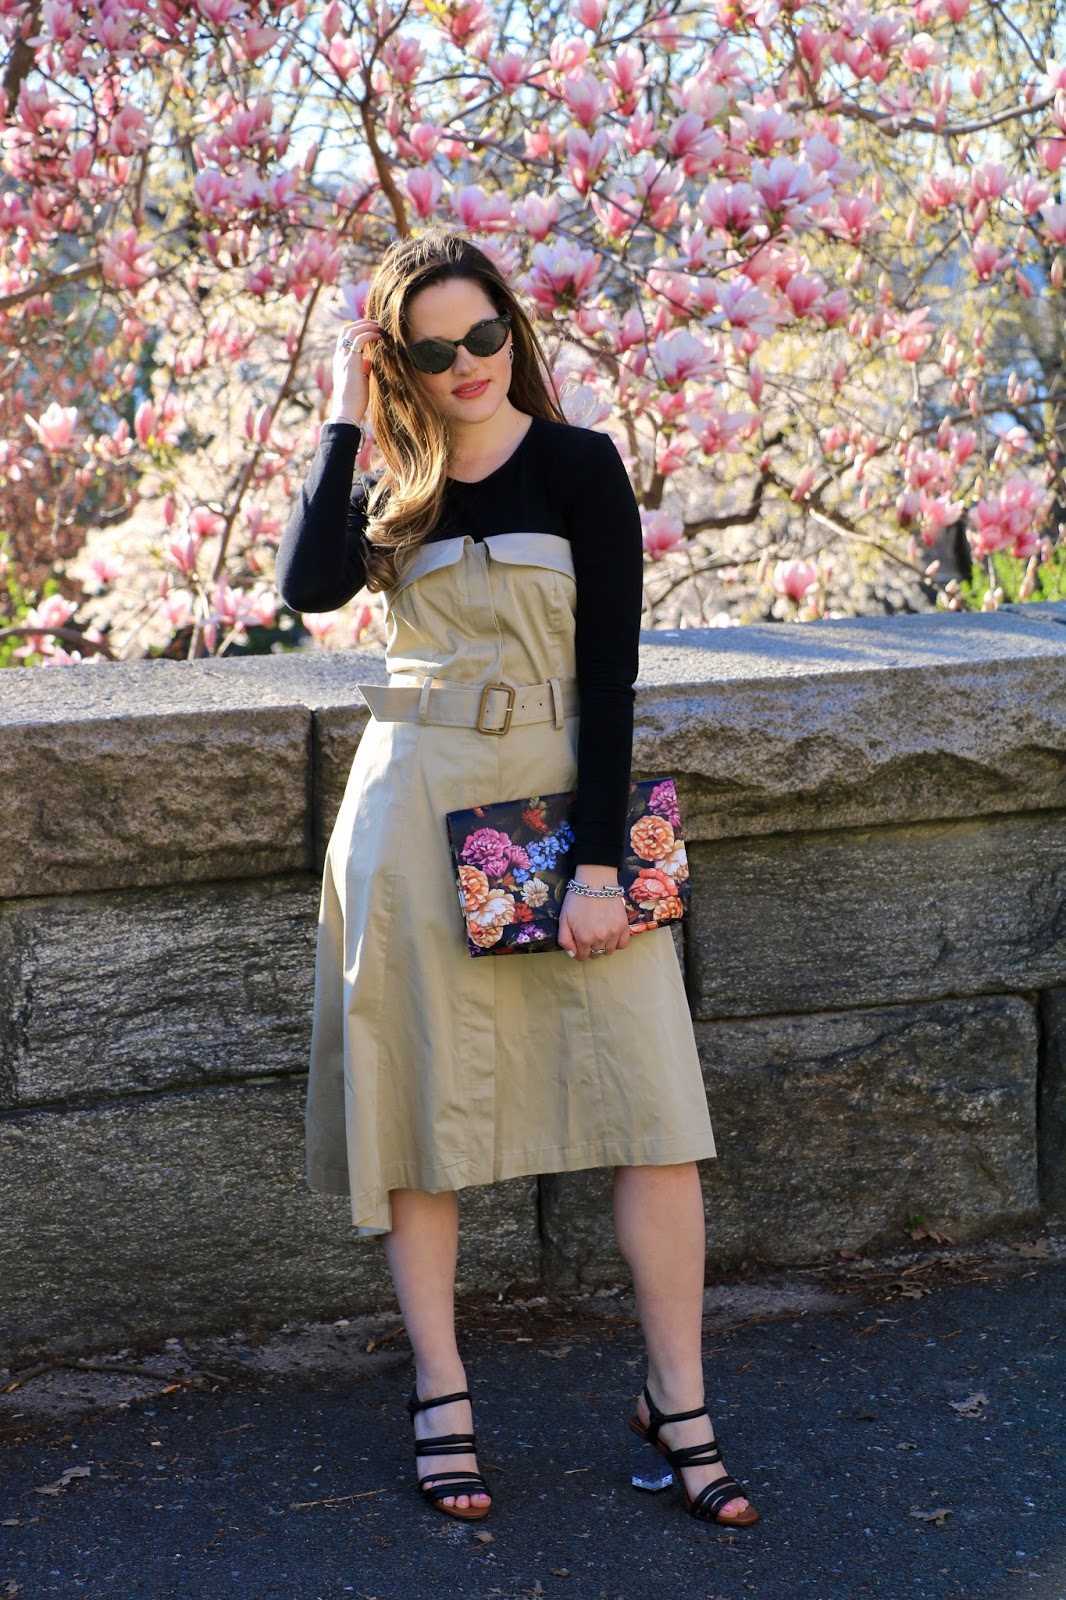 Nyc fashion blogger Kathleen Harper showing how to wear a bodysuit under a strapless dress